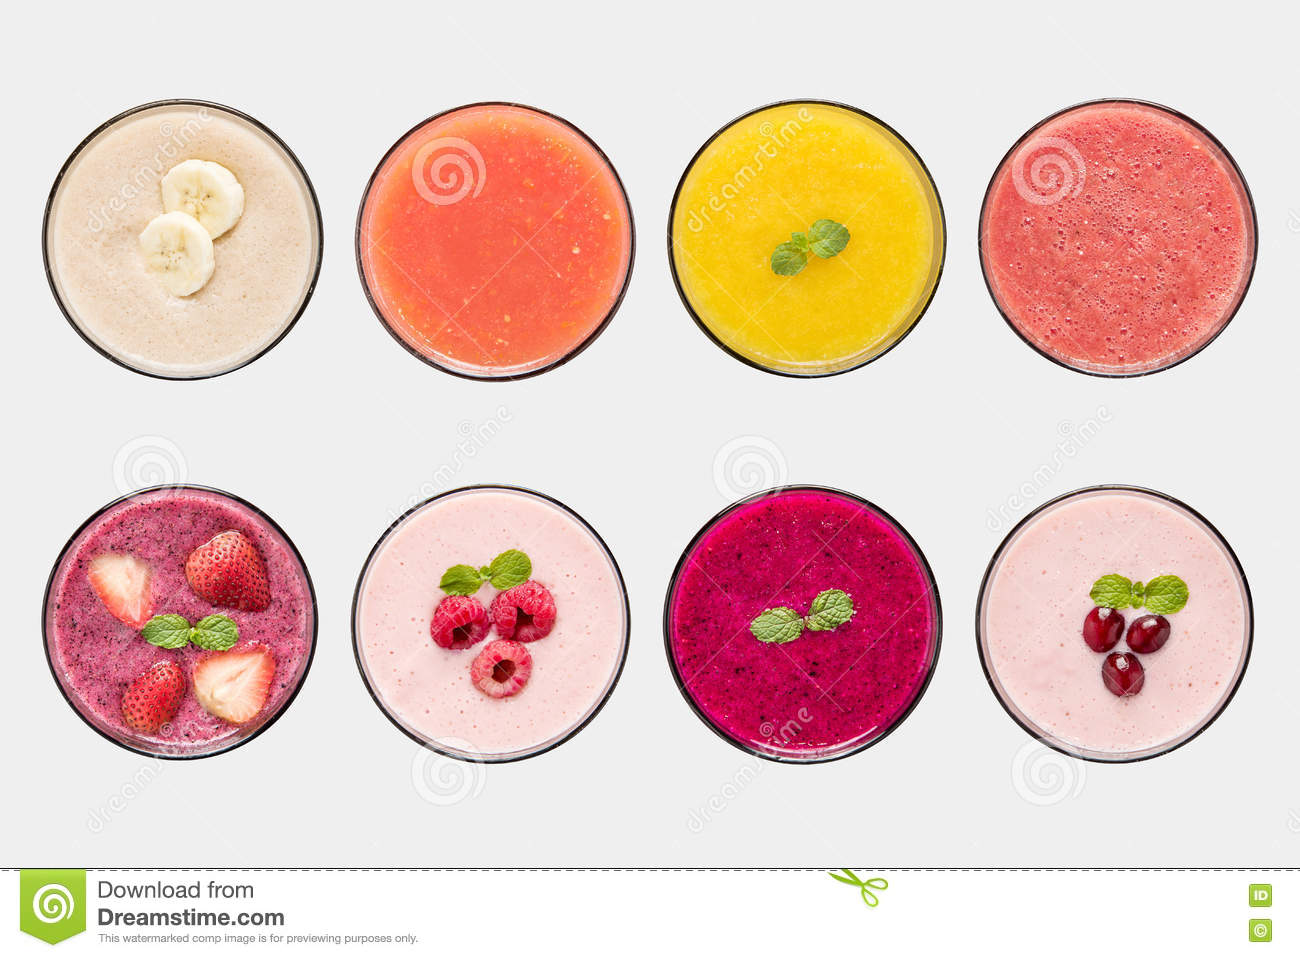 Mockup fruit smoothie and fruit juice set isolated on white background.